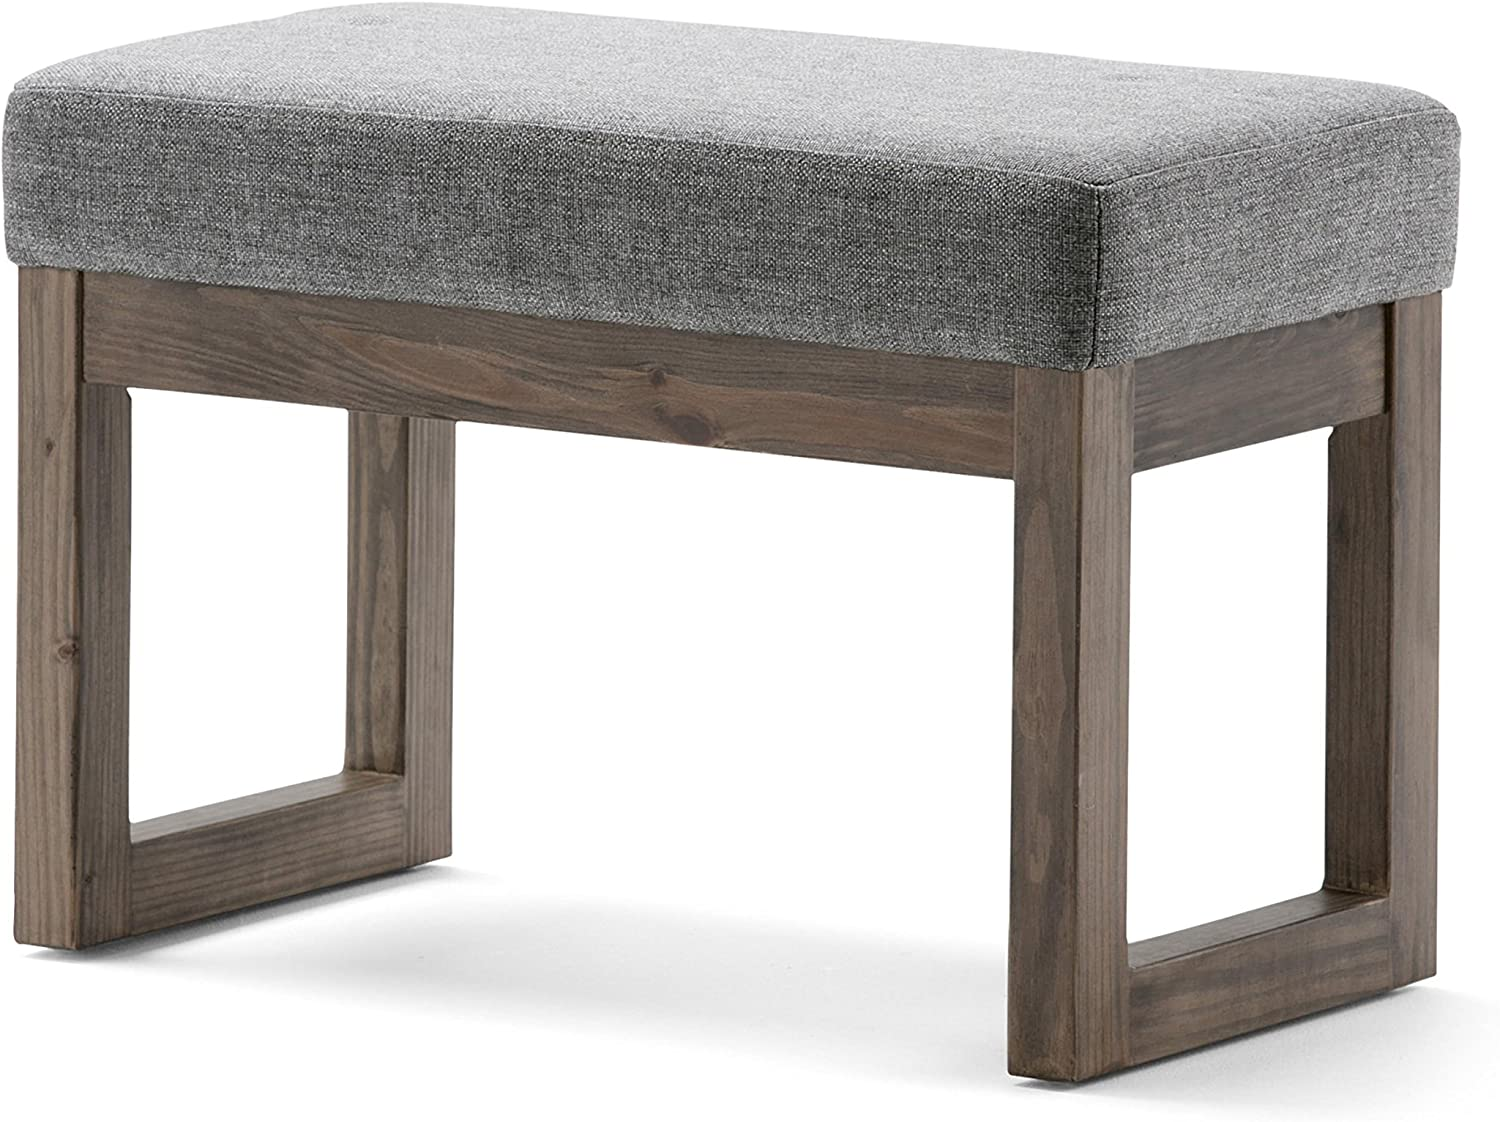 Simpli Home 3AXCOT-252-SM-GL Milltown 27 inch Wide ContemporaryFootstool Ottoman Bench in Grey Linen Look Fabric